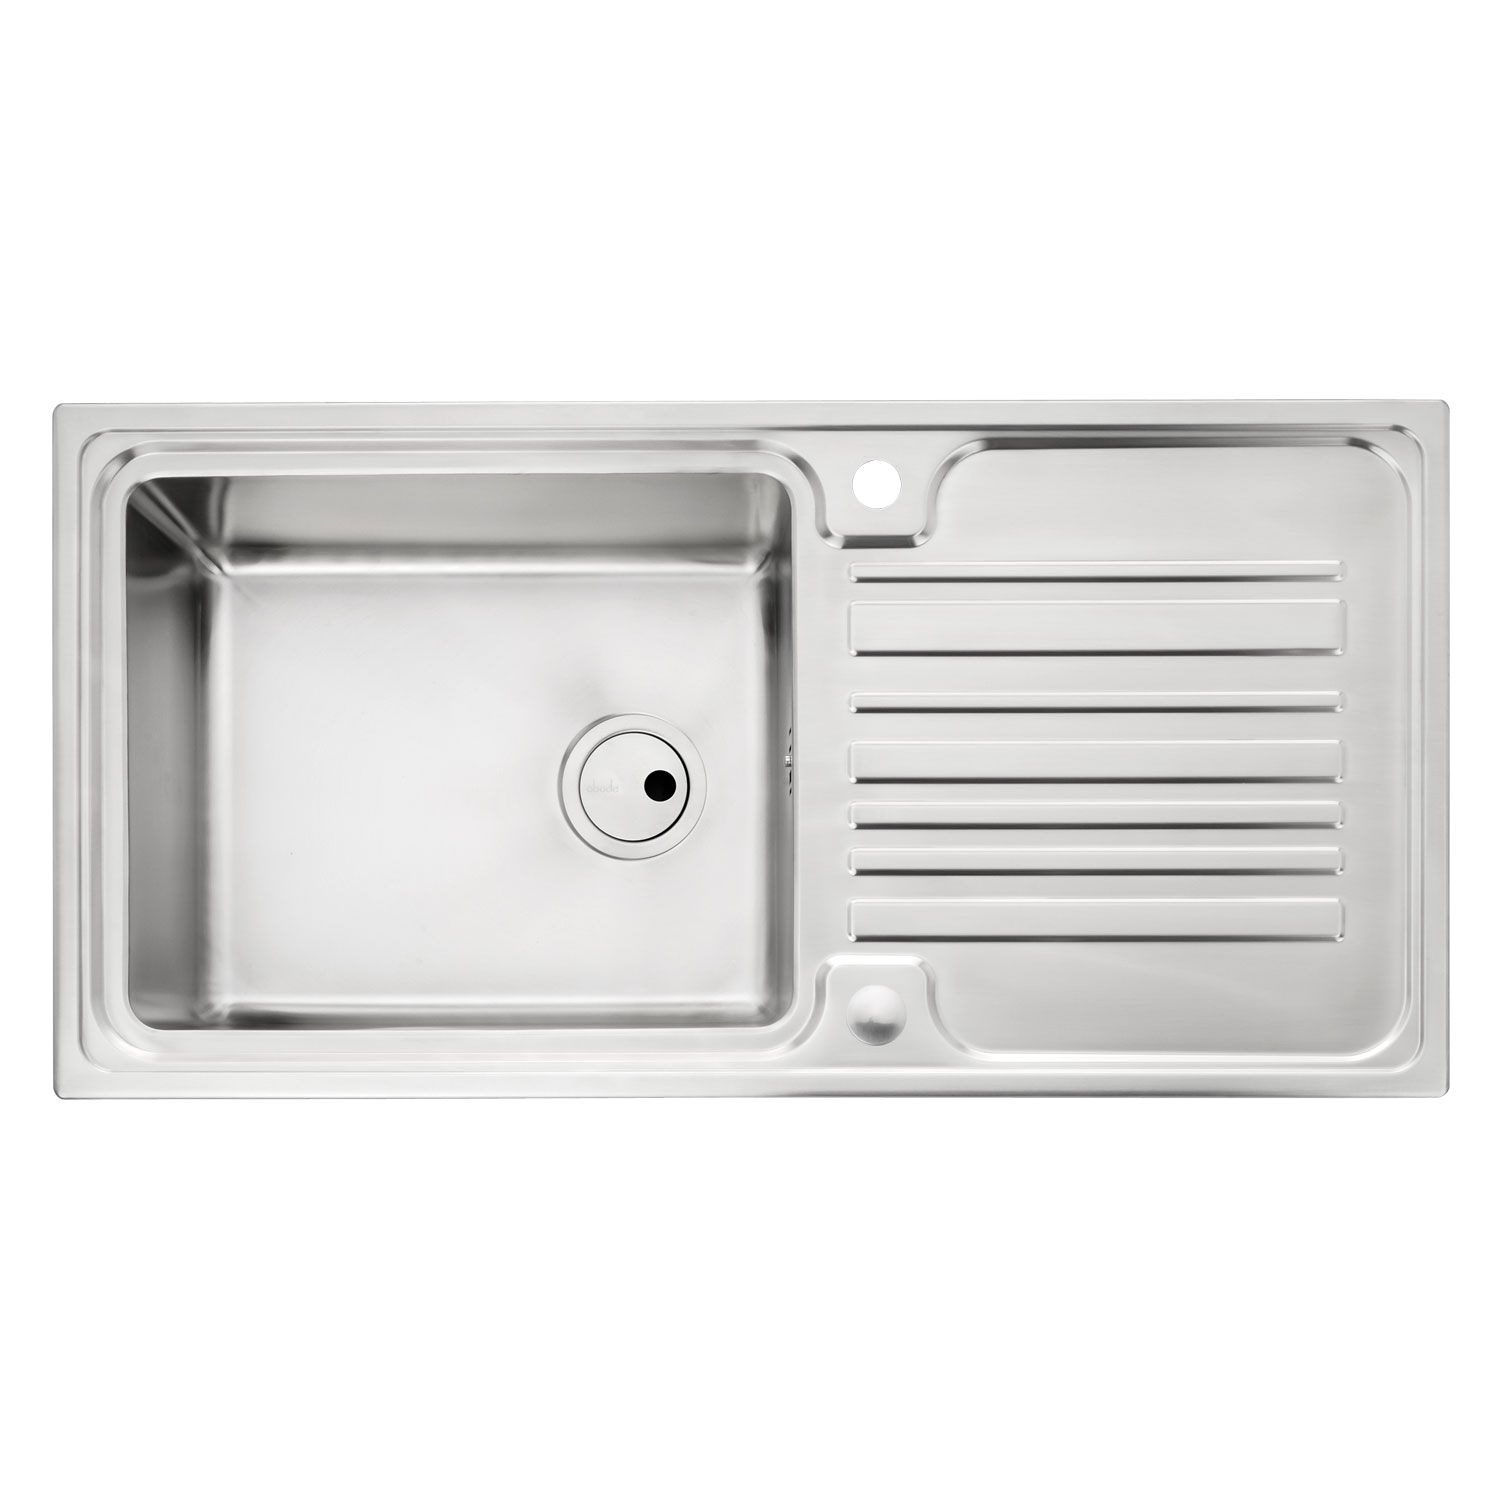 Abode aw5047 apex 10 bowl stainless steel sink sinks taps apex 10 bowl stainless steel kitchen sink workwithnaturefo